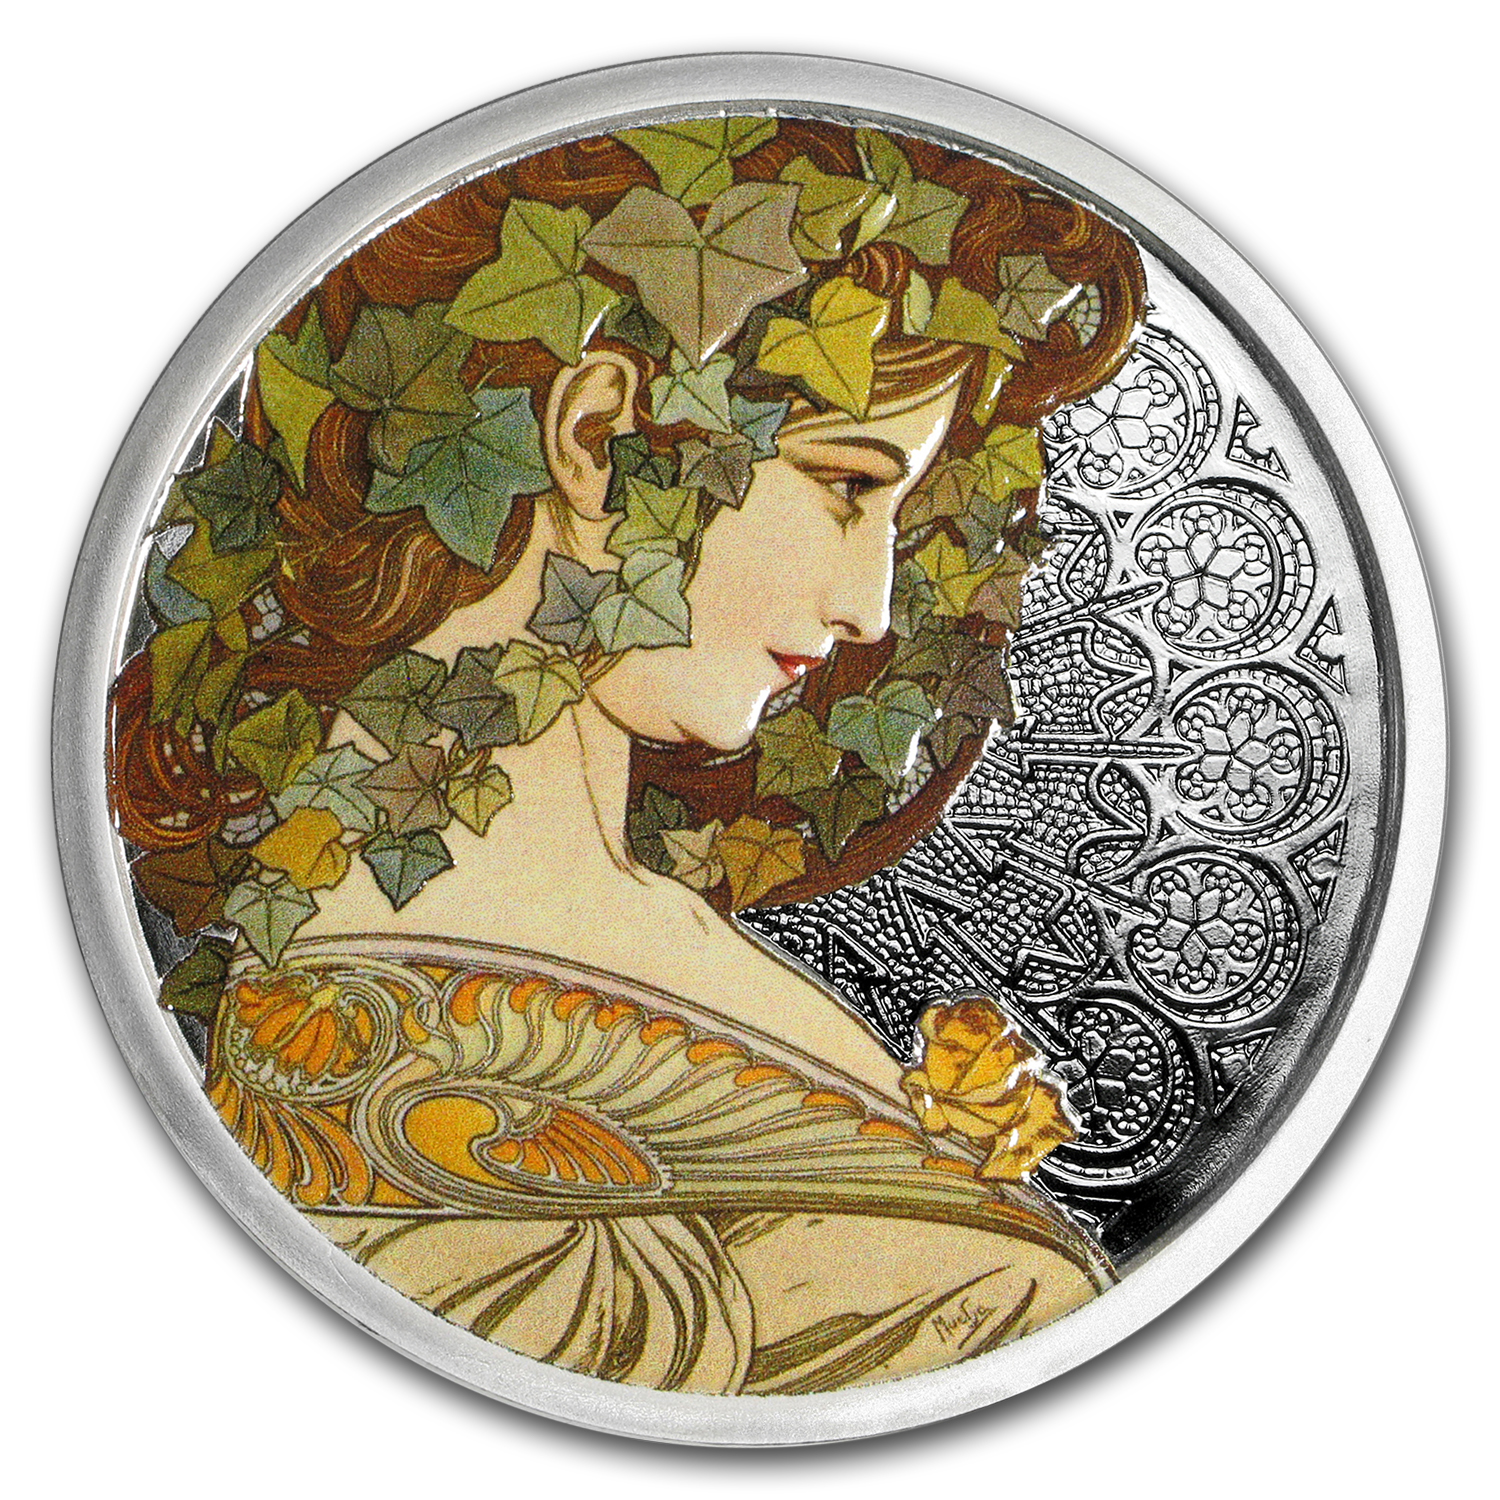 5 oz Silver Colorized Proof Mucha Collection (Ivy)